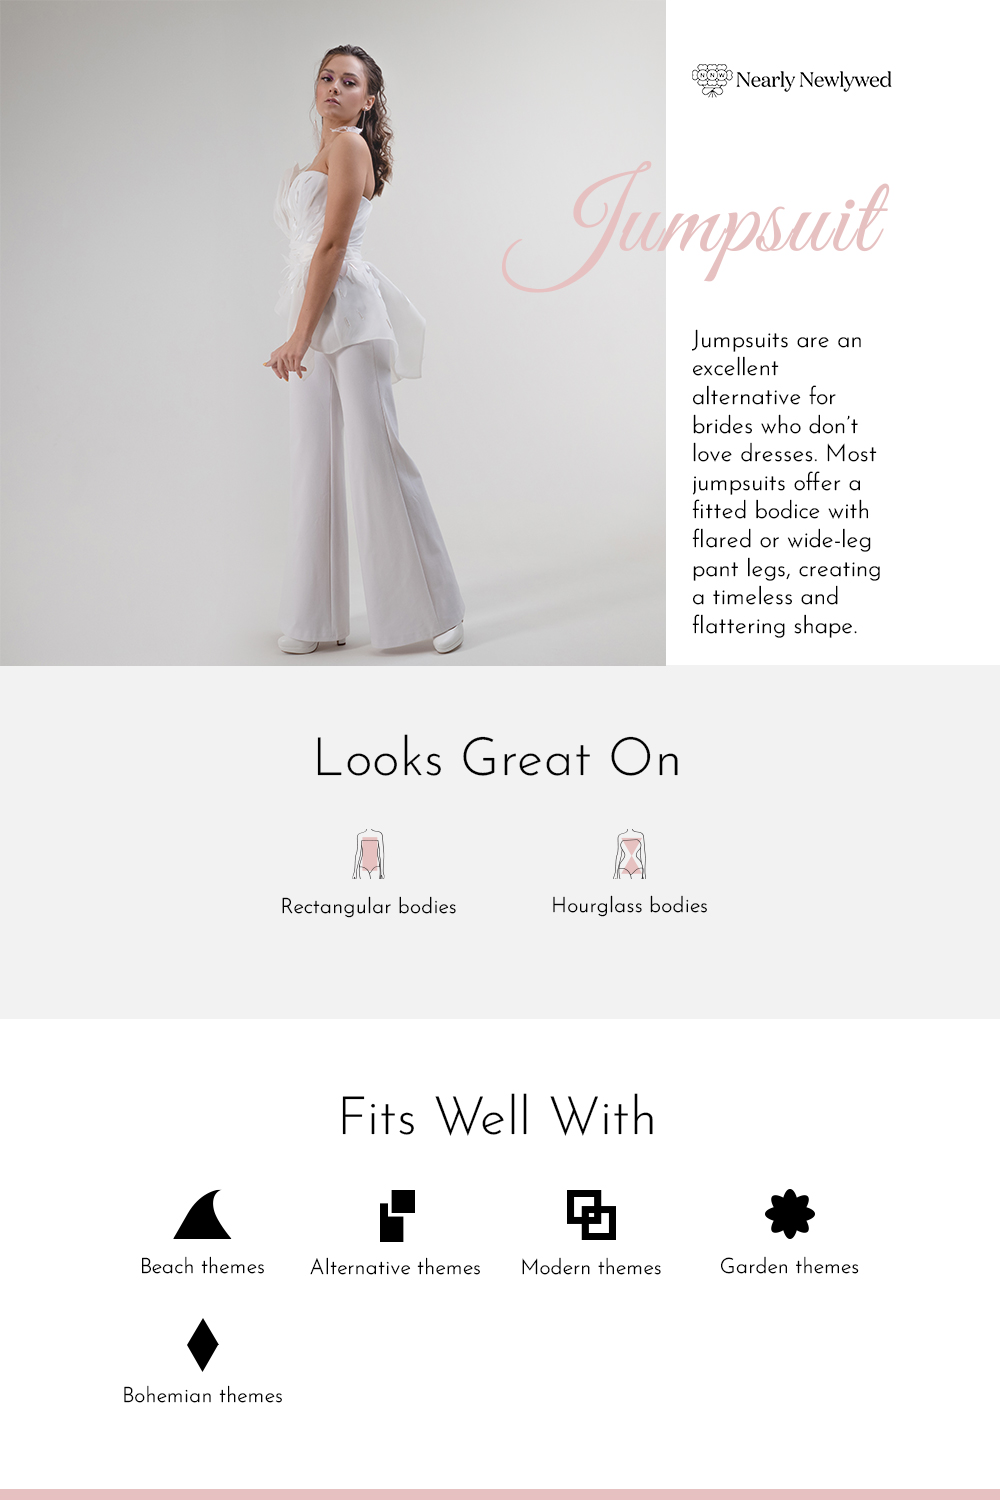 Jumpsuit Wedding Dress Silhouette Infographic